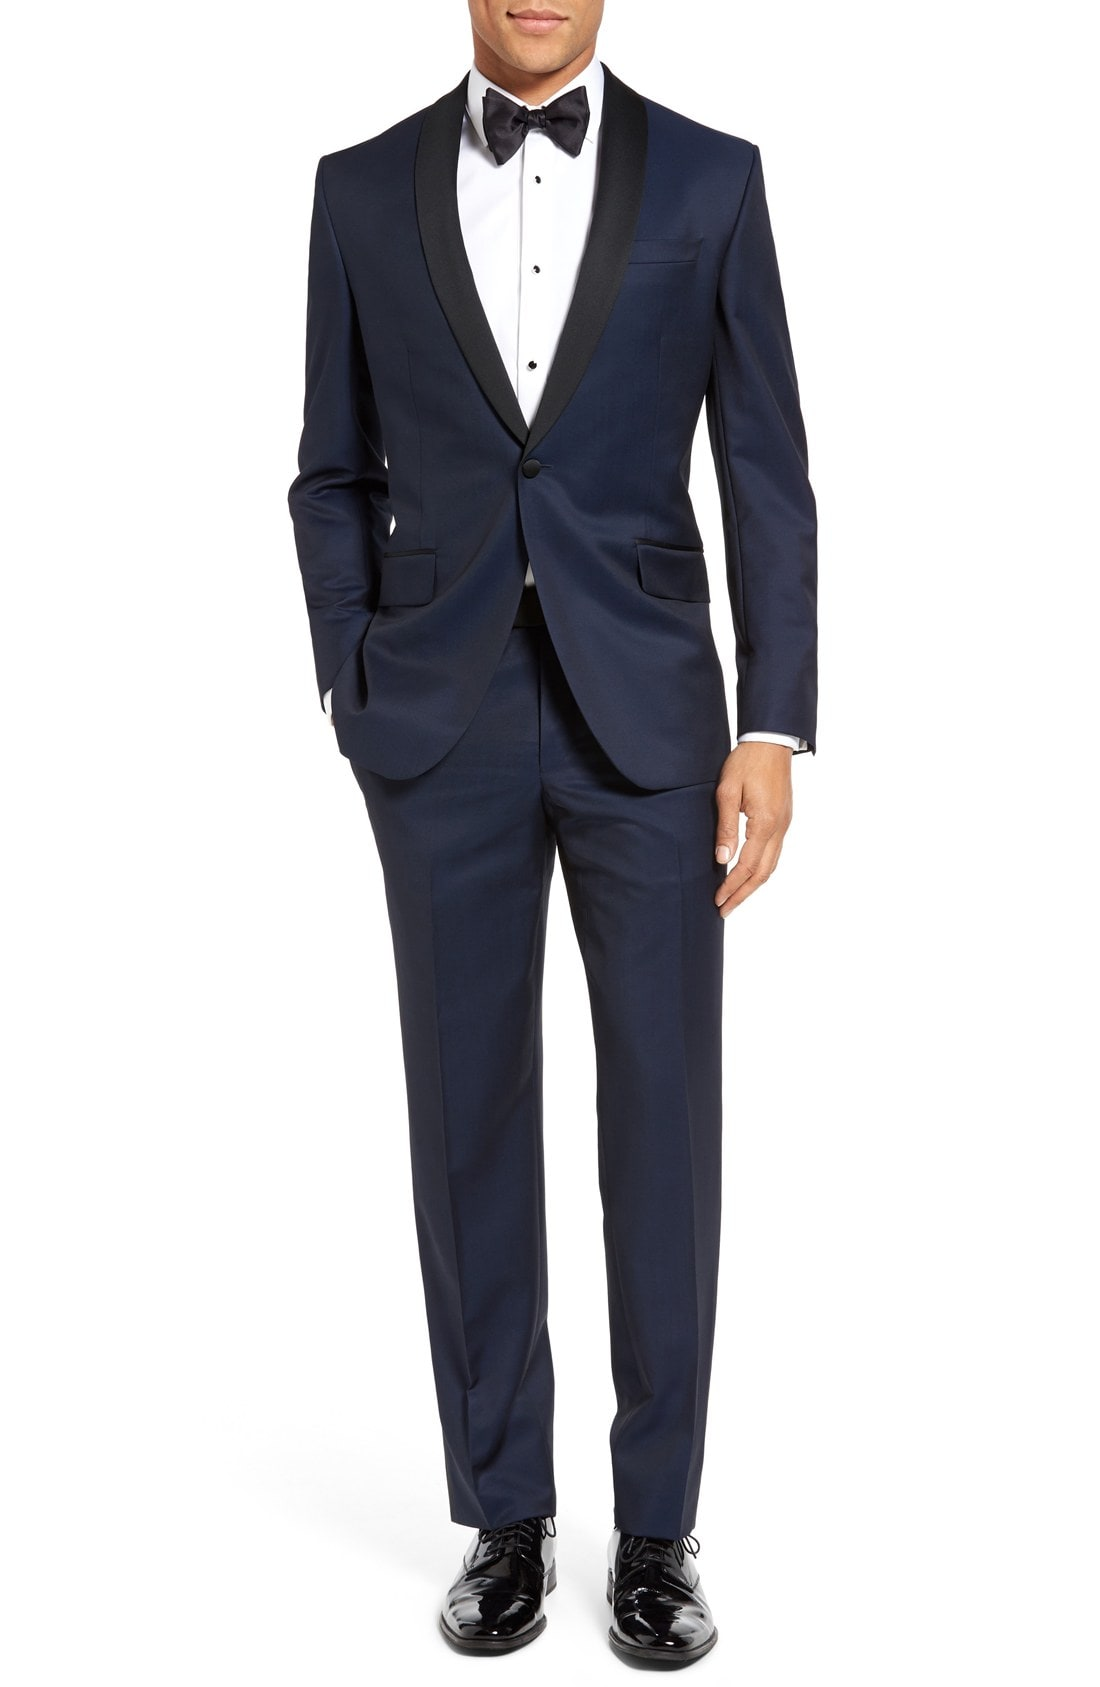 Men's Tuxedos: Wedding Suits & Formal Wear | Nordstrom